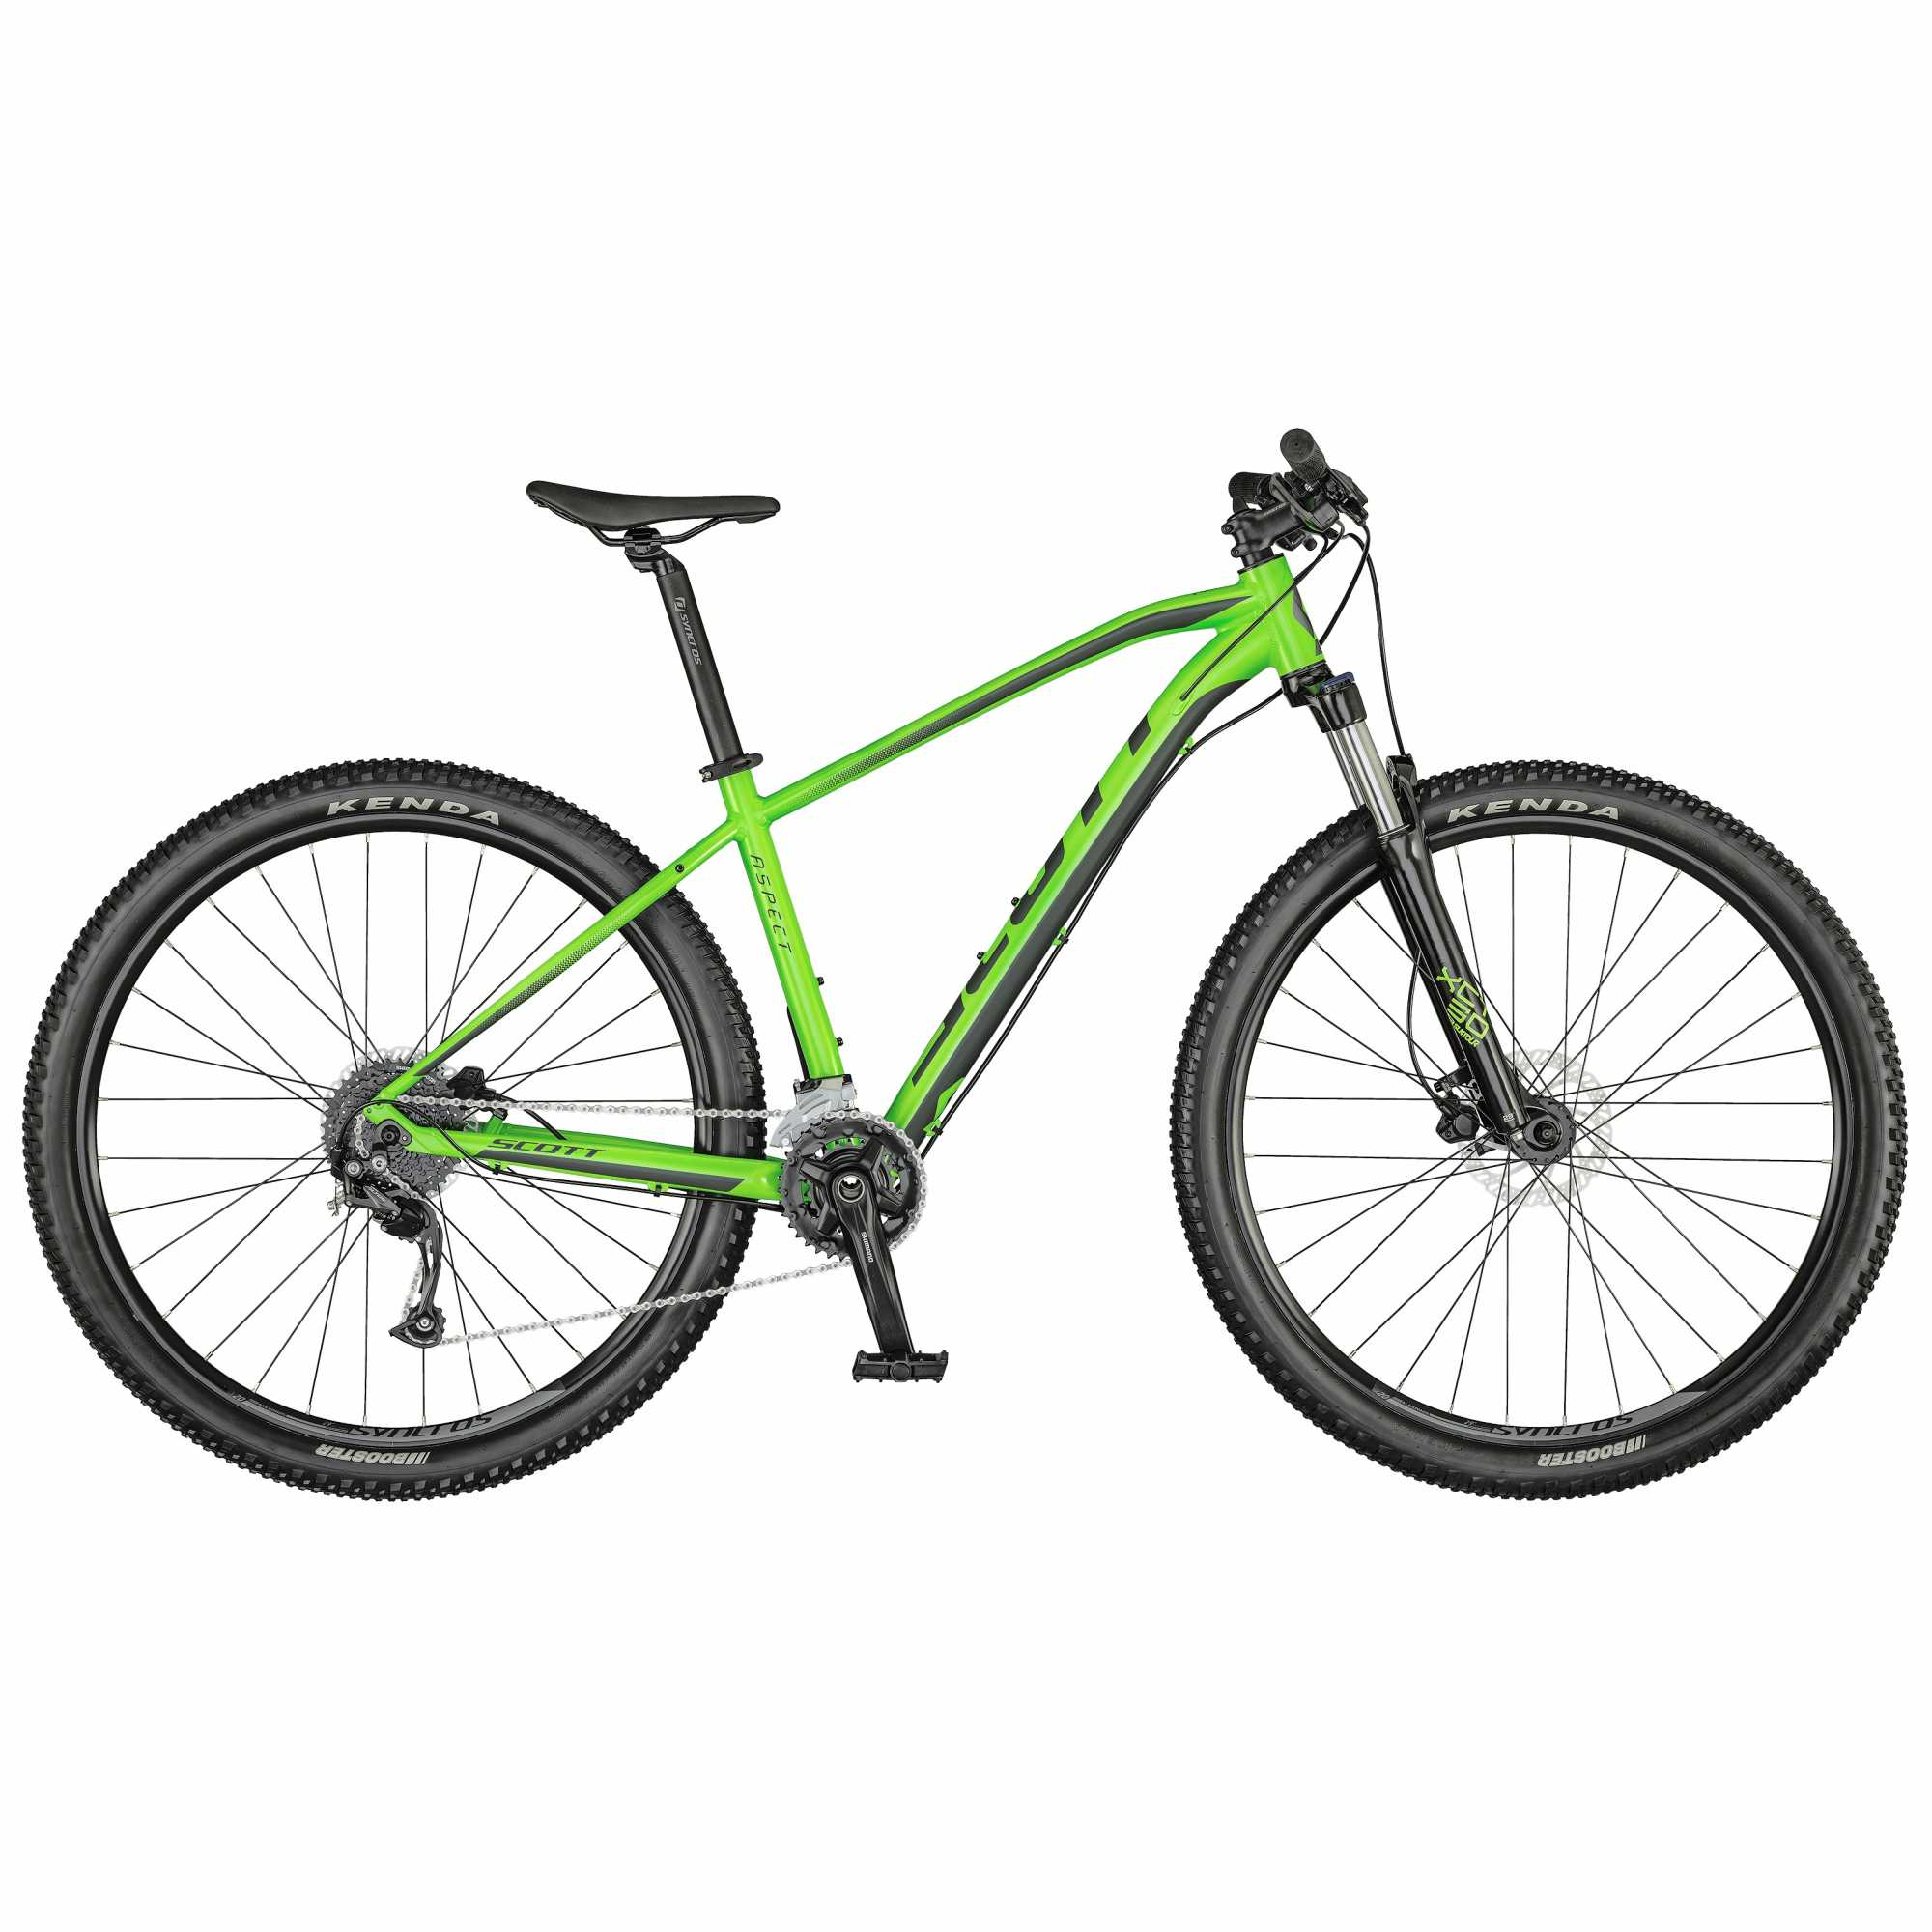 Велосипед SCOTT Aspect 950 smith green (2021)